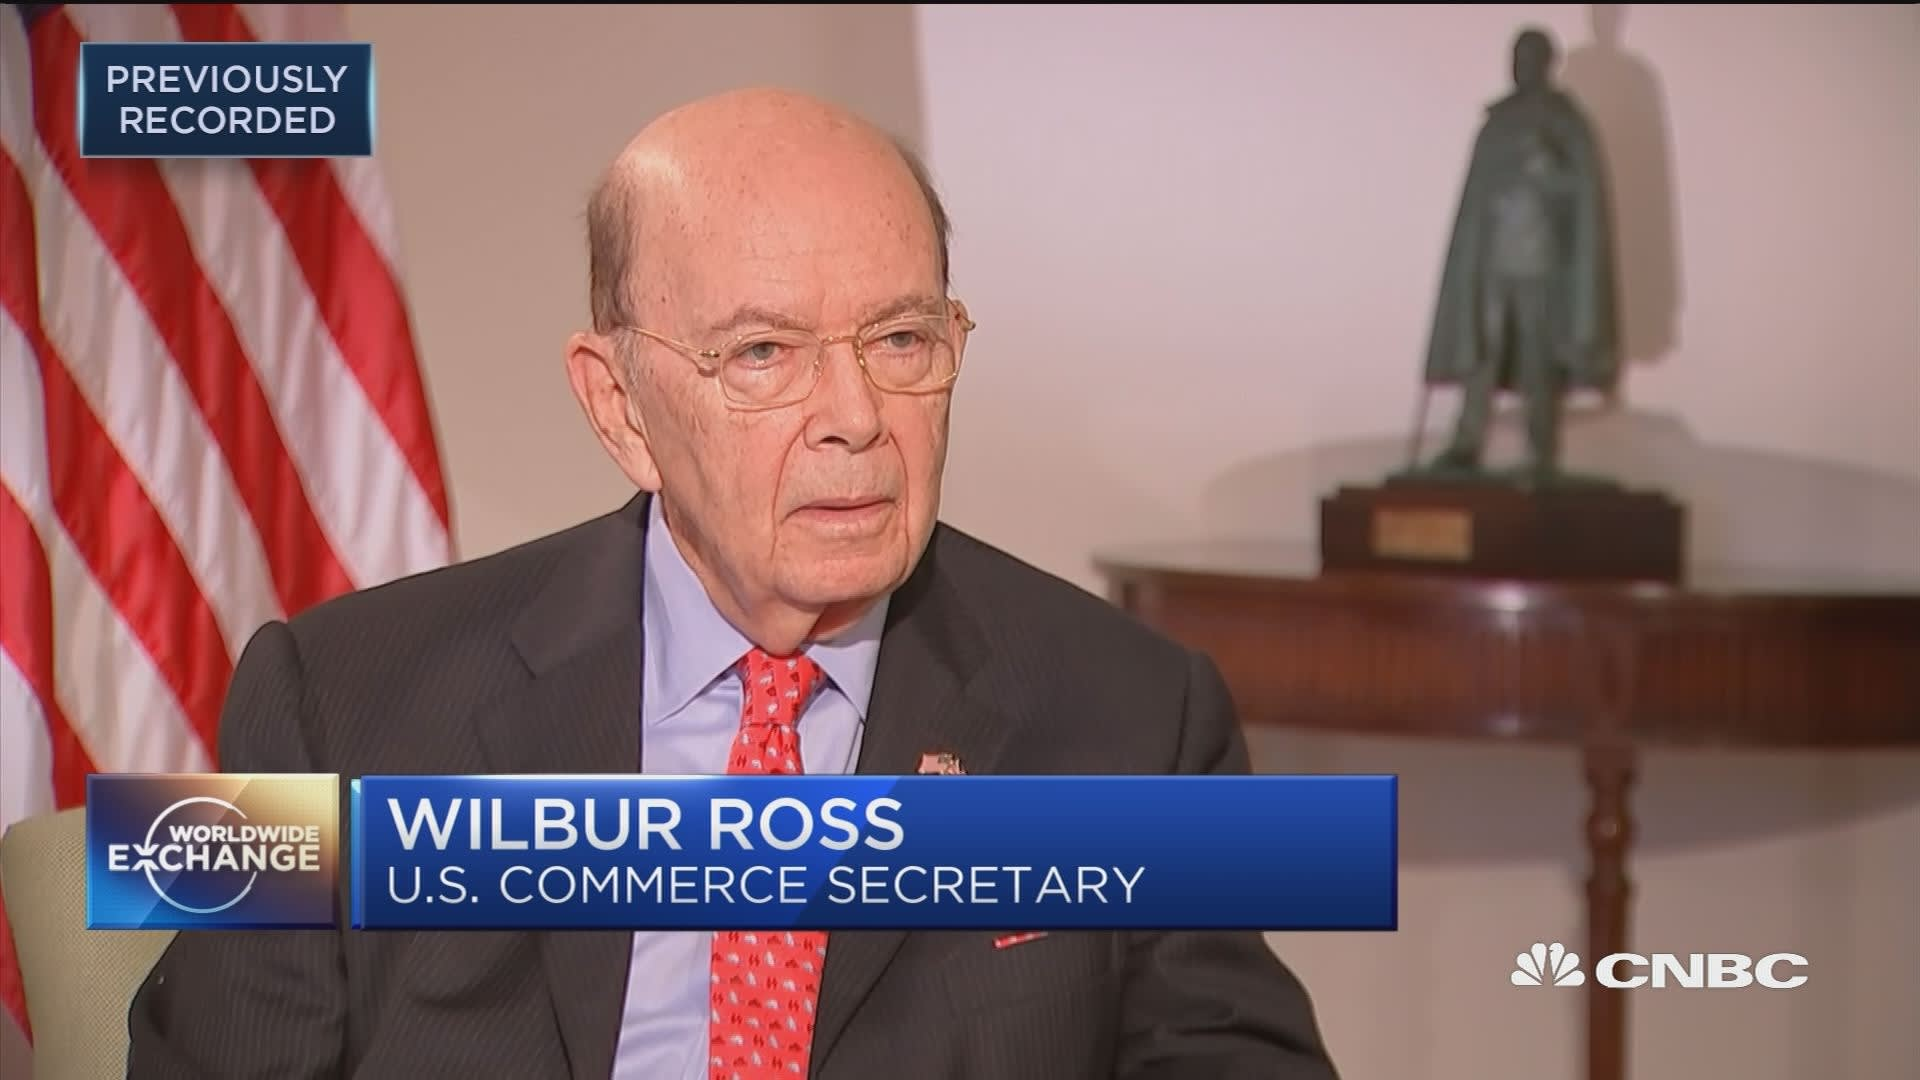 Wilbur Ross says reports that he did not disclose ties to Putin ...